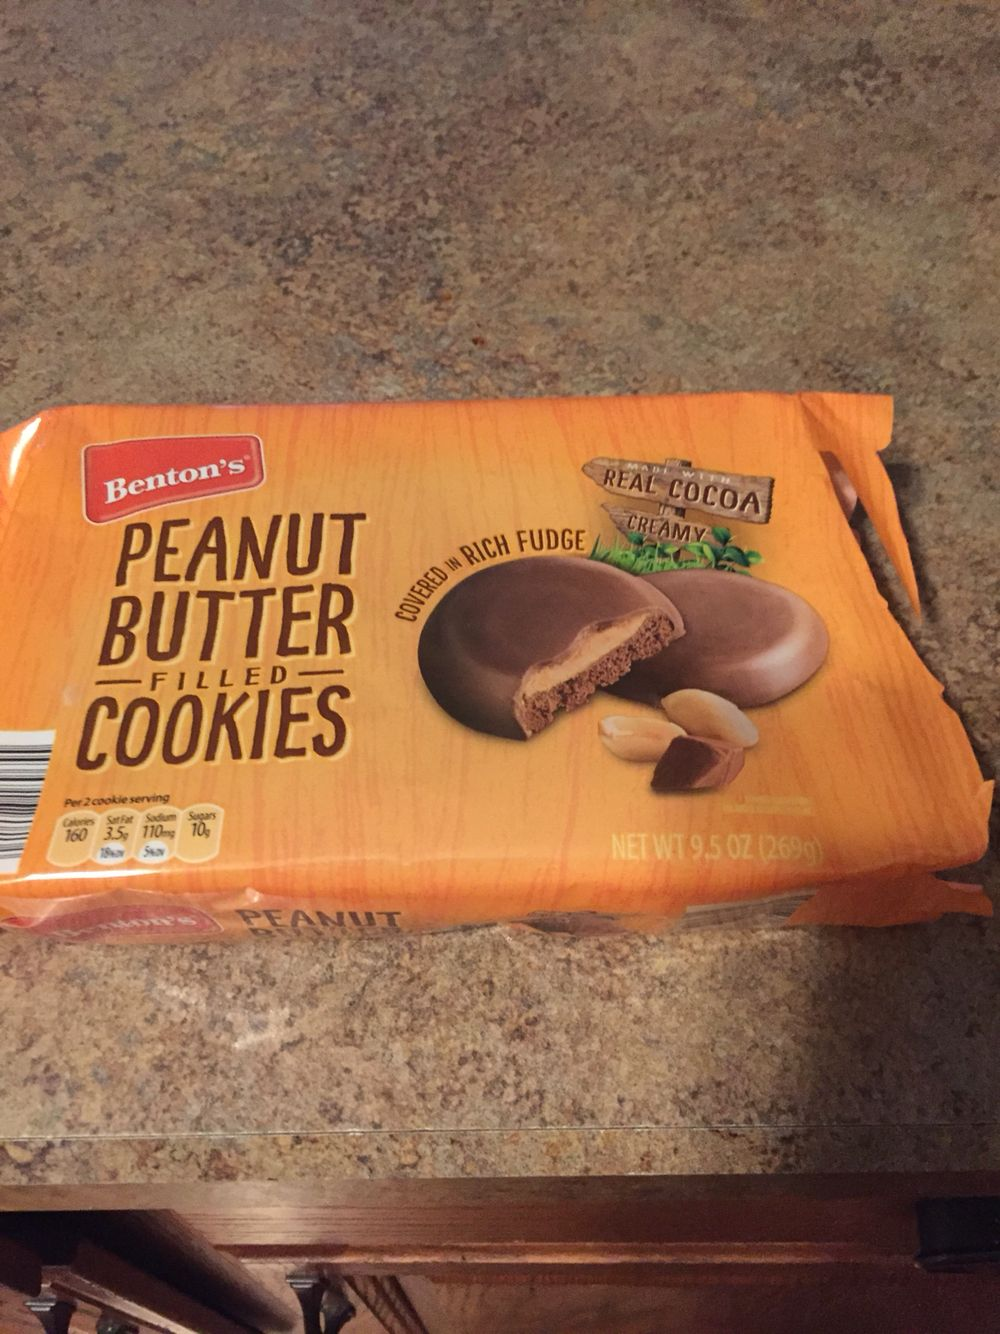 i purchased theses cookies from aldi and they are way better than